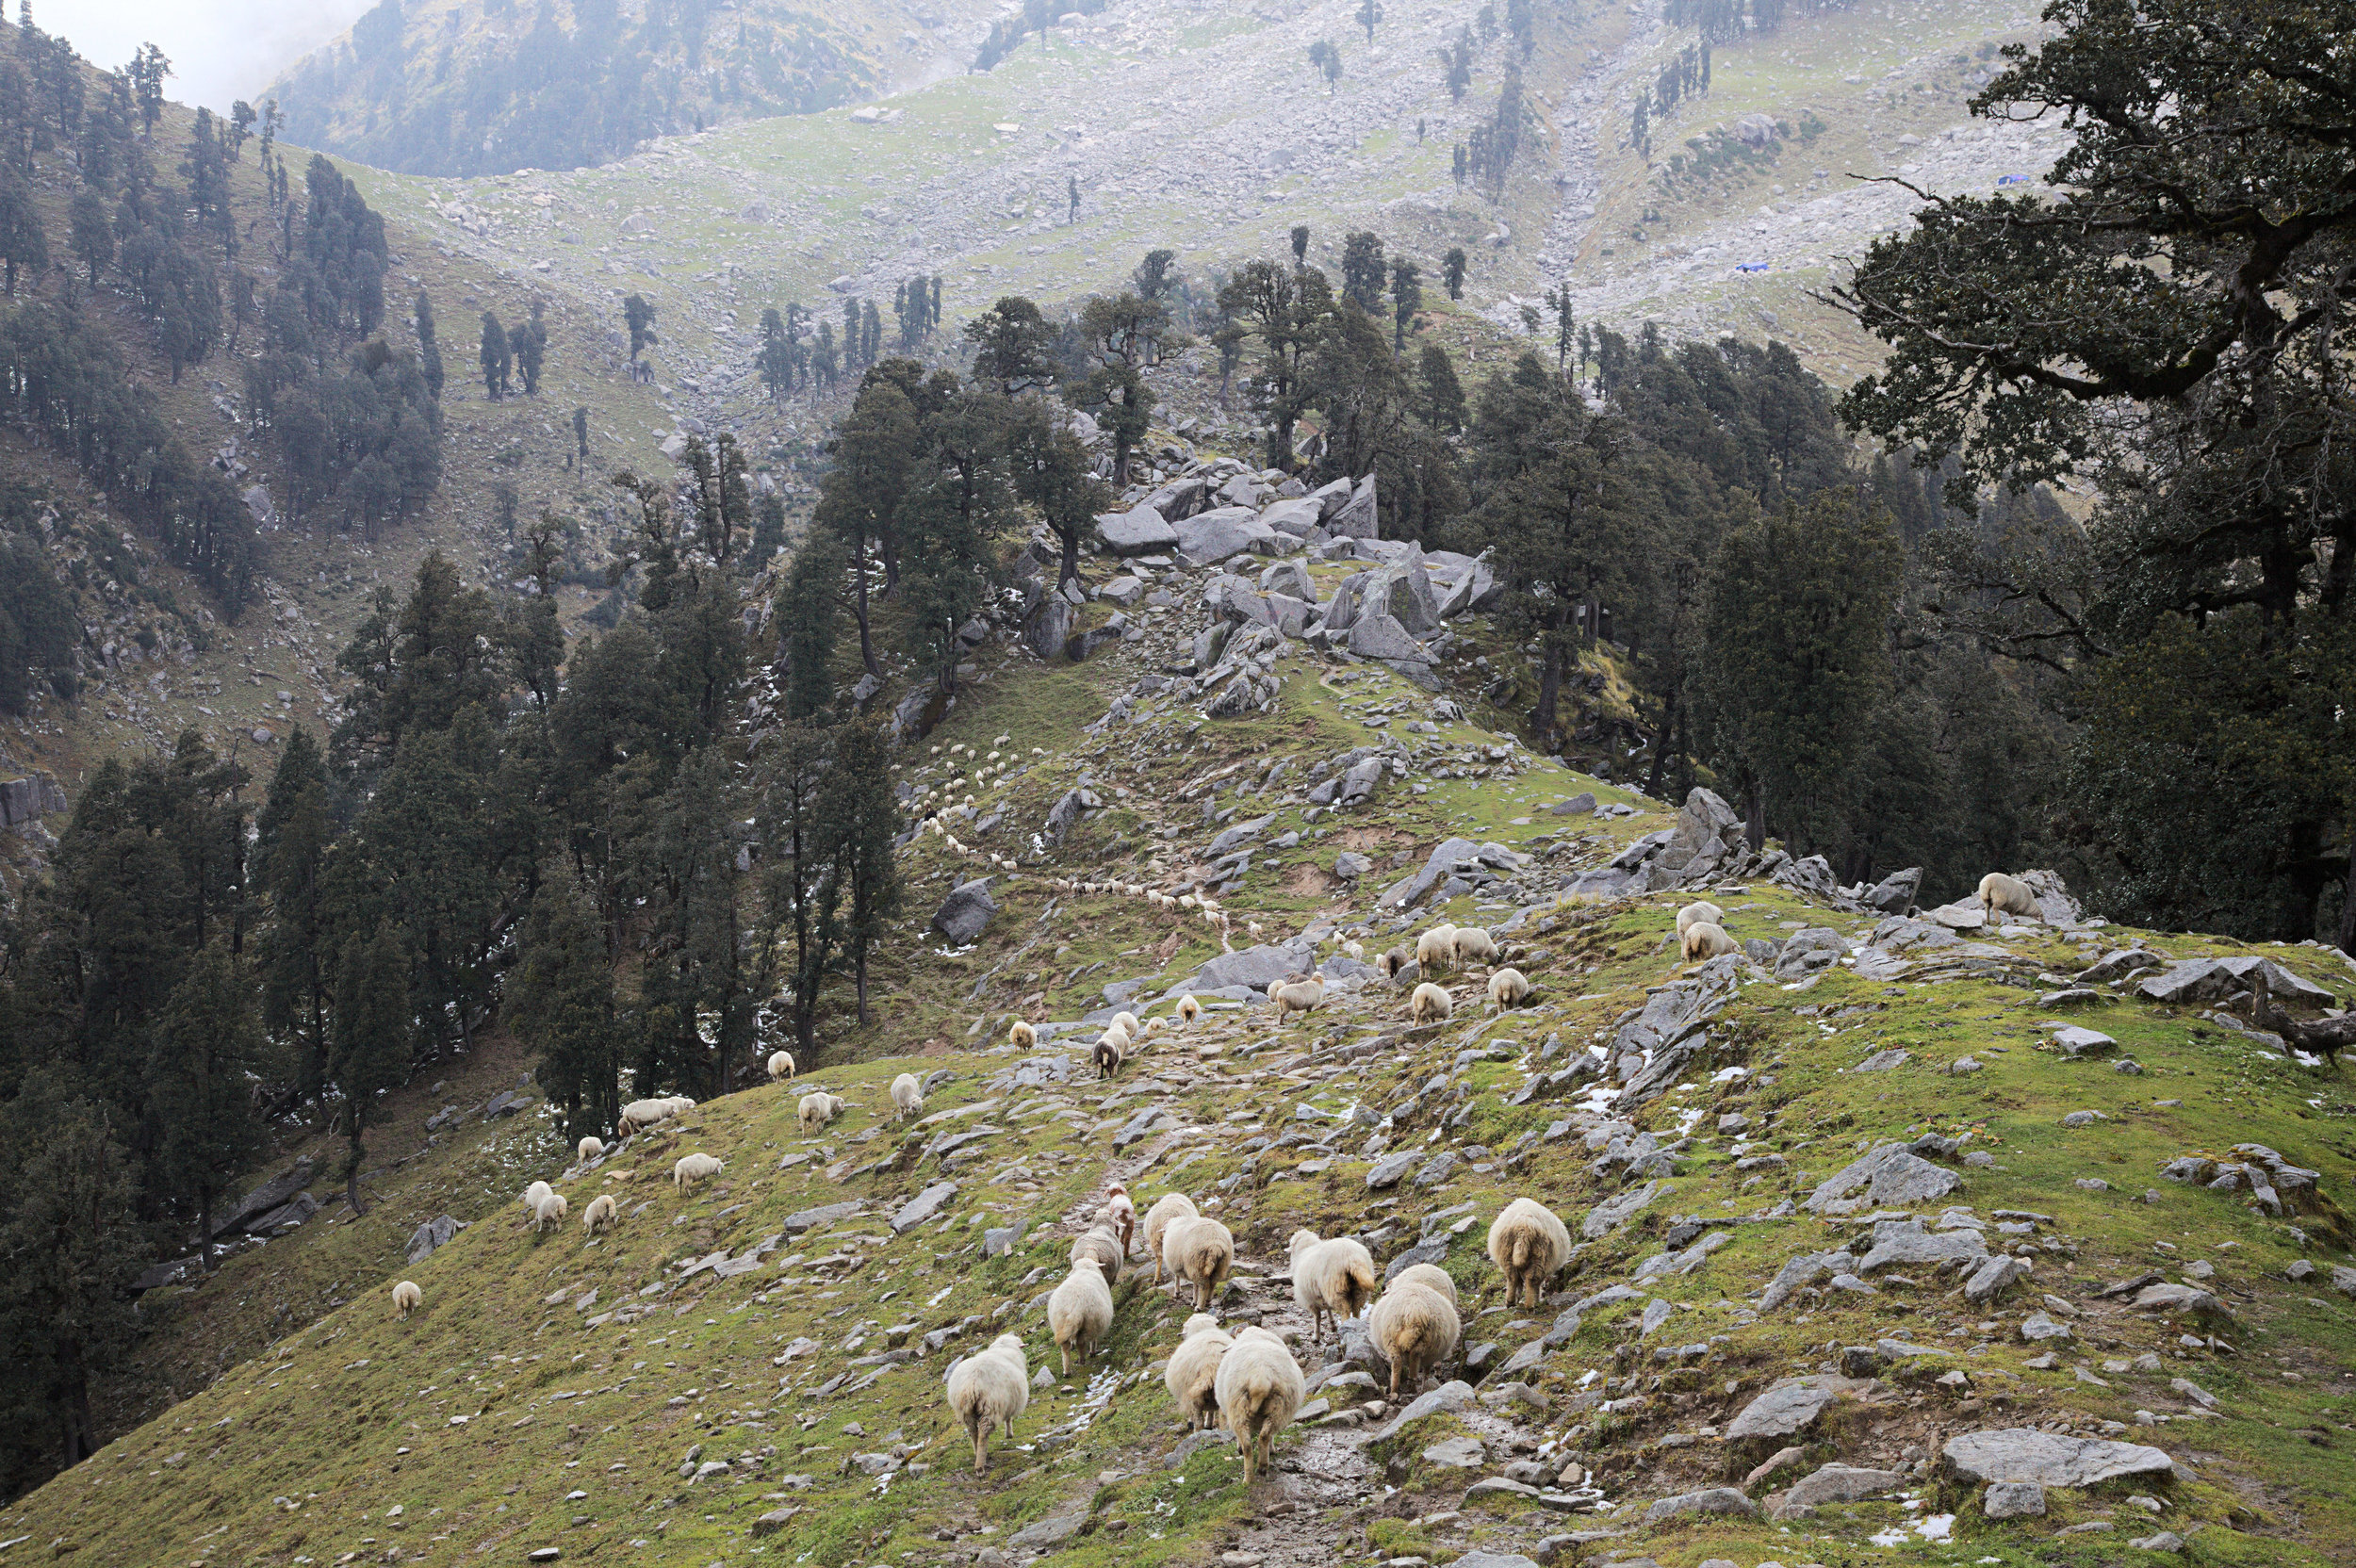 Arjun's flock at Ilaka  got , a grazing ground where Arjun stops for several weeks while waiting for the snow to melt on the mountains above.